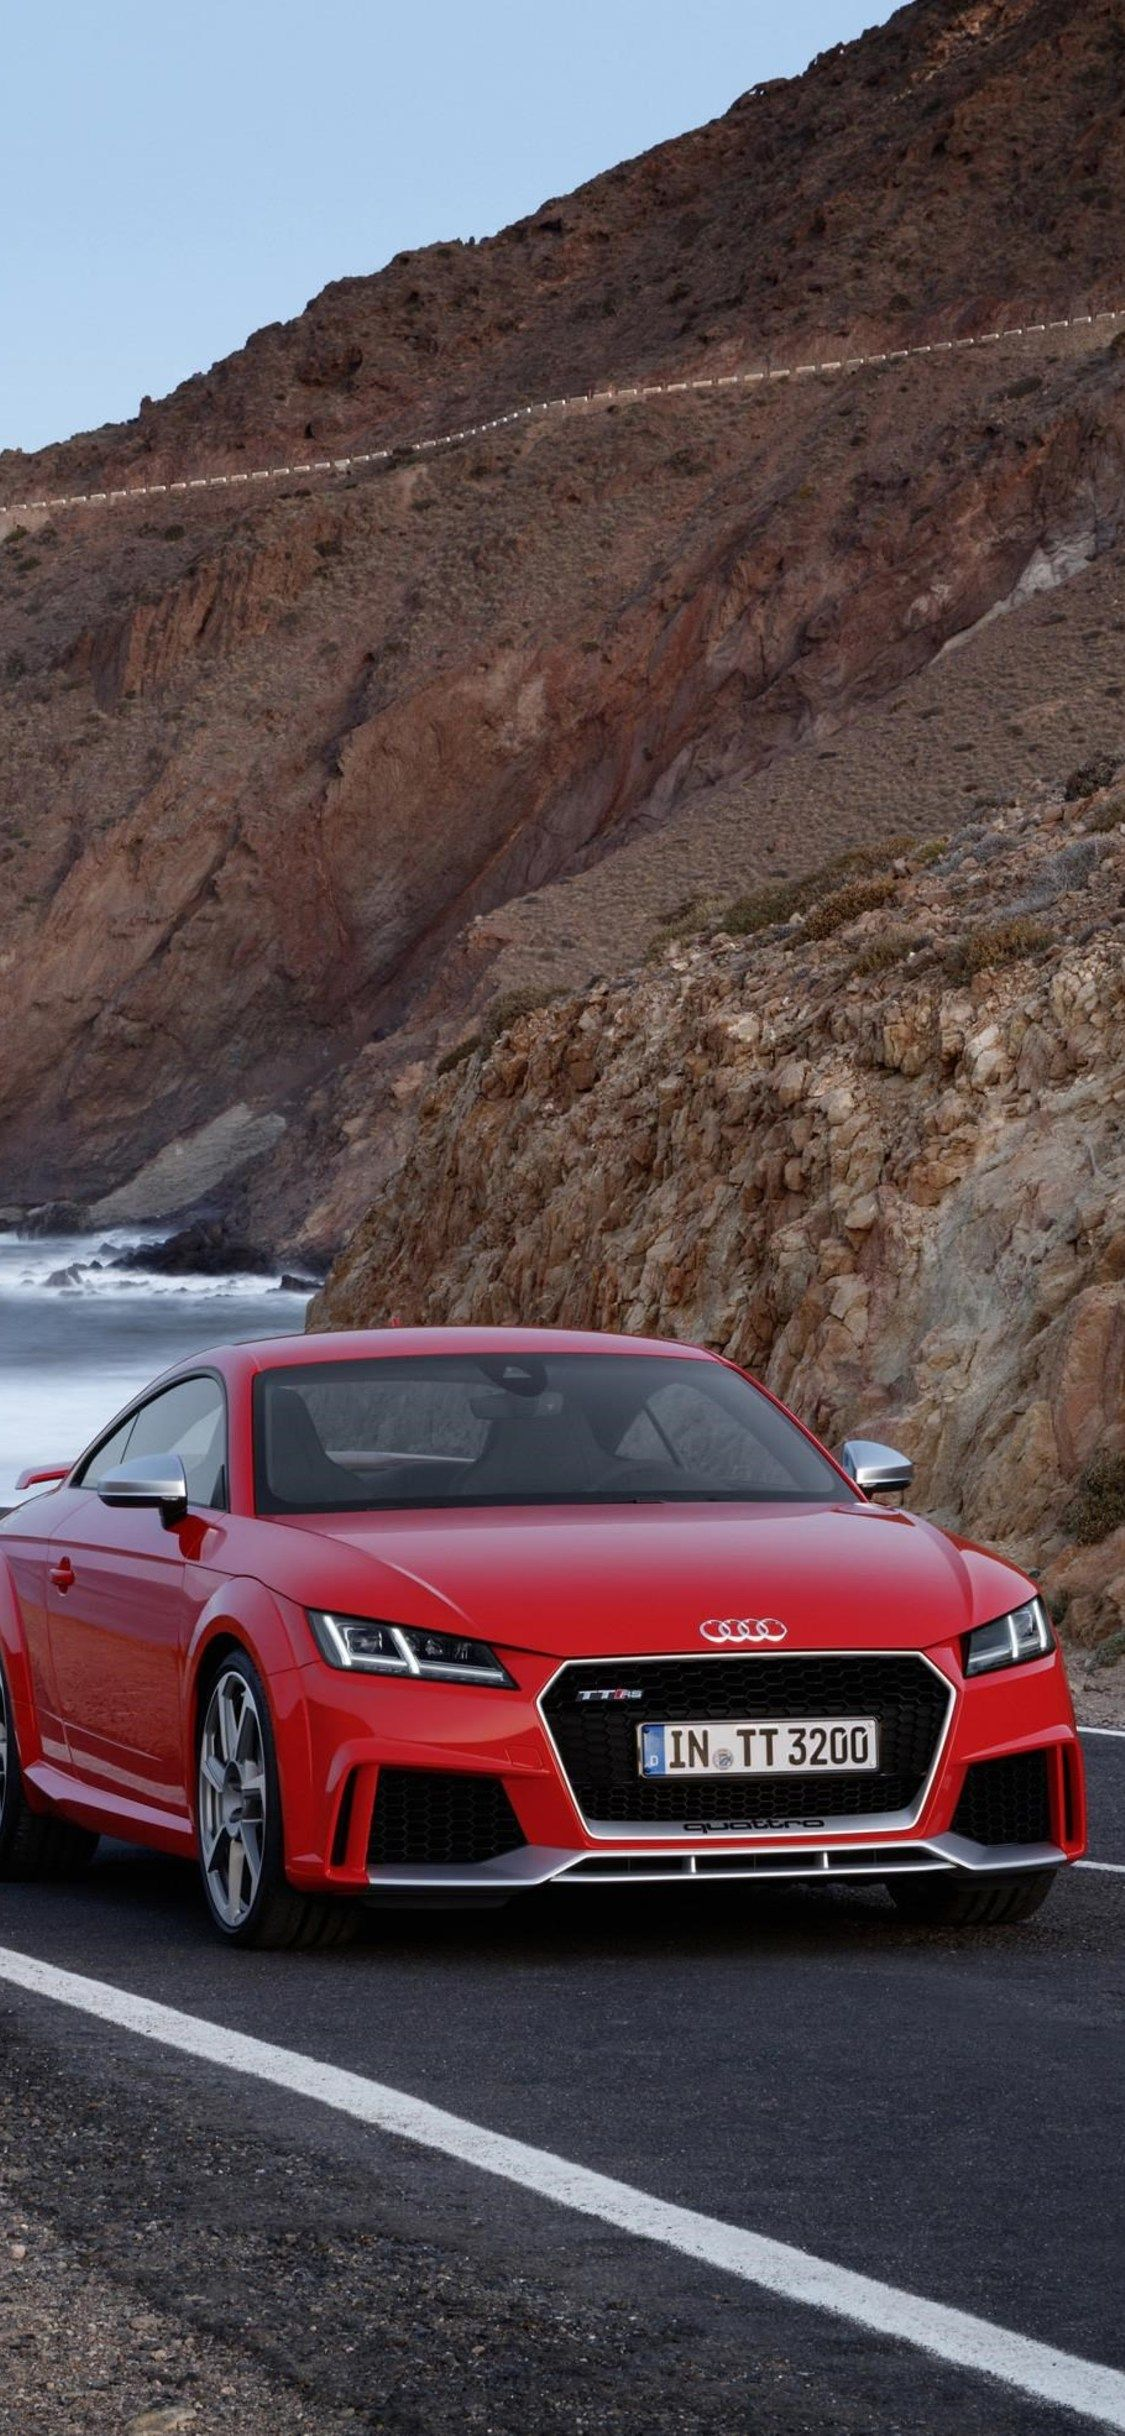 4k Audi Tt Wallpapers Top Free 4k Audi Tt Backgrounds